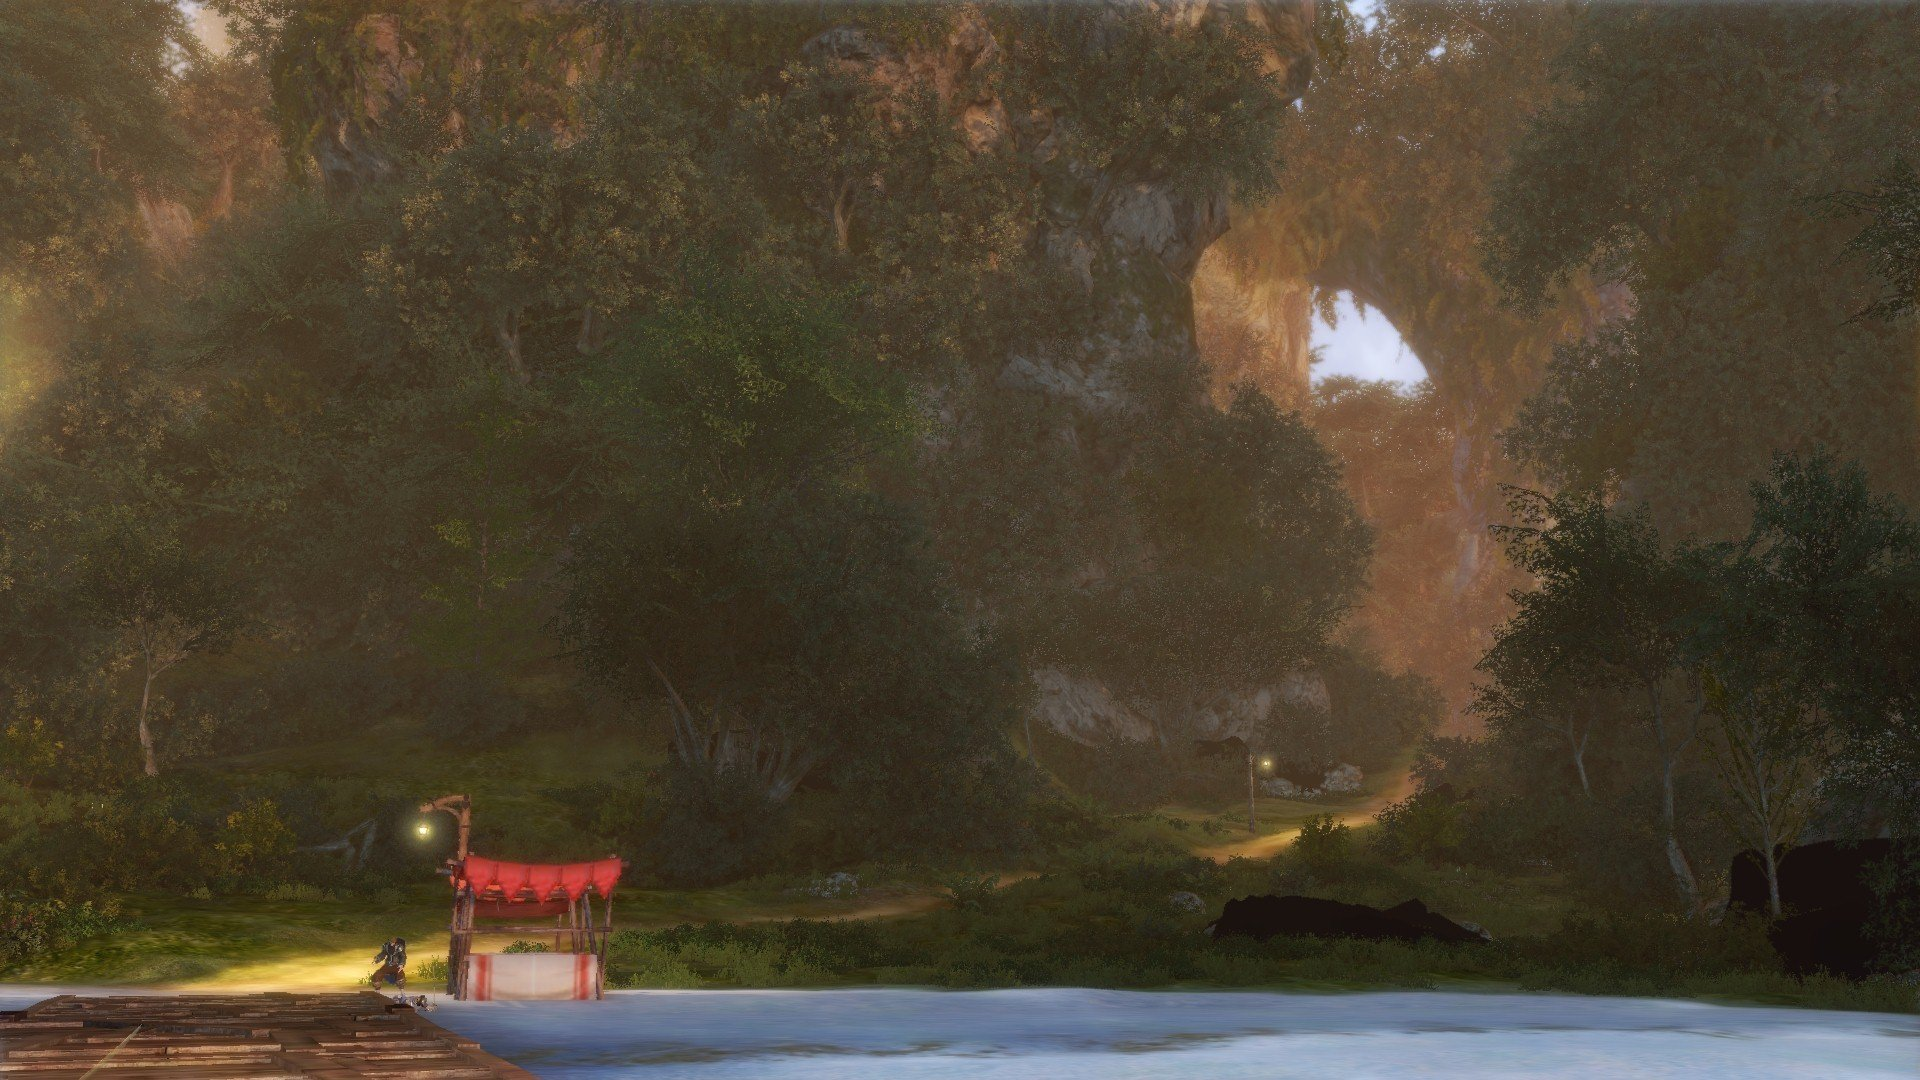 ArcheAge - this island... i can't wait to explore